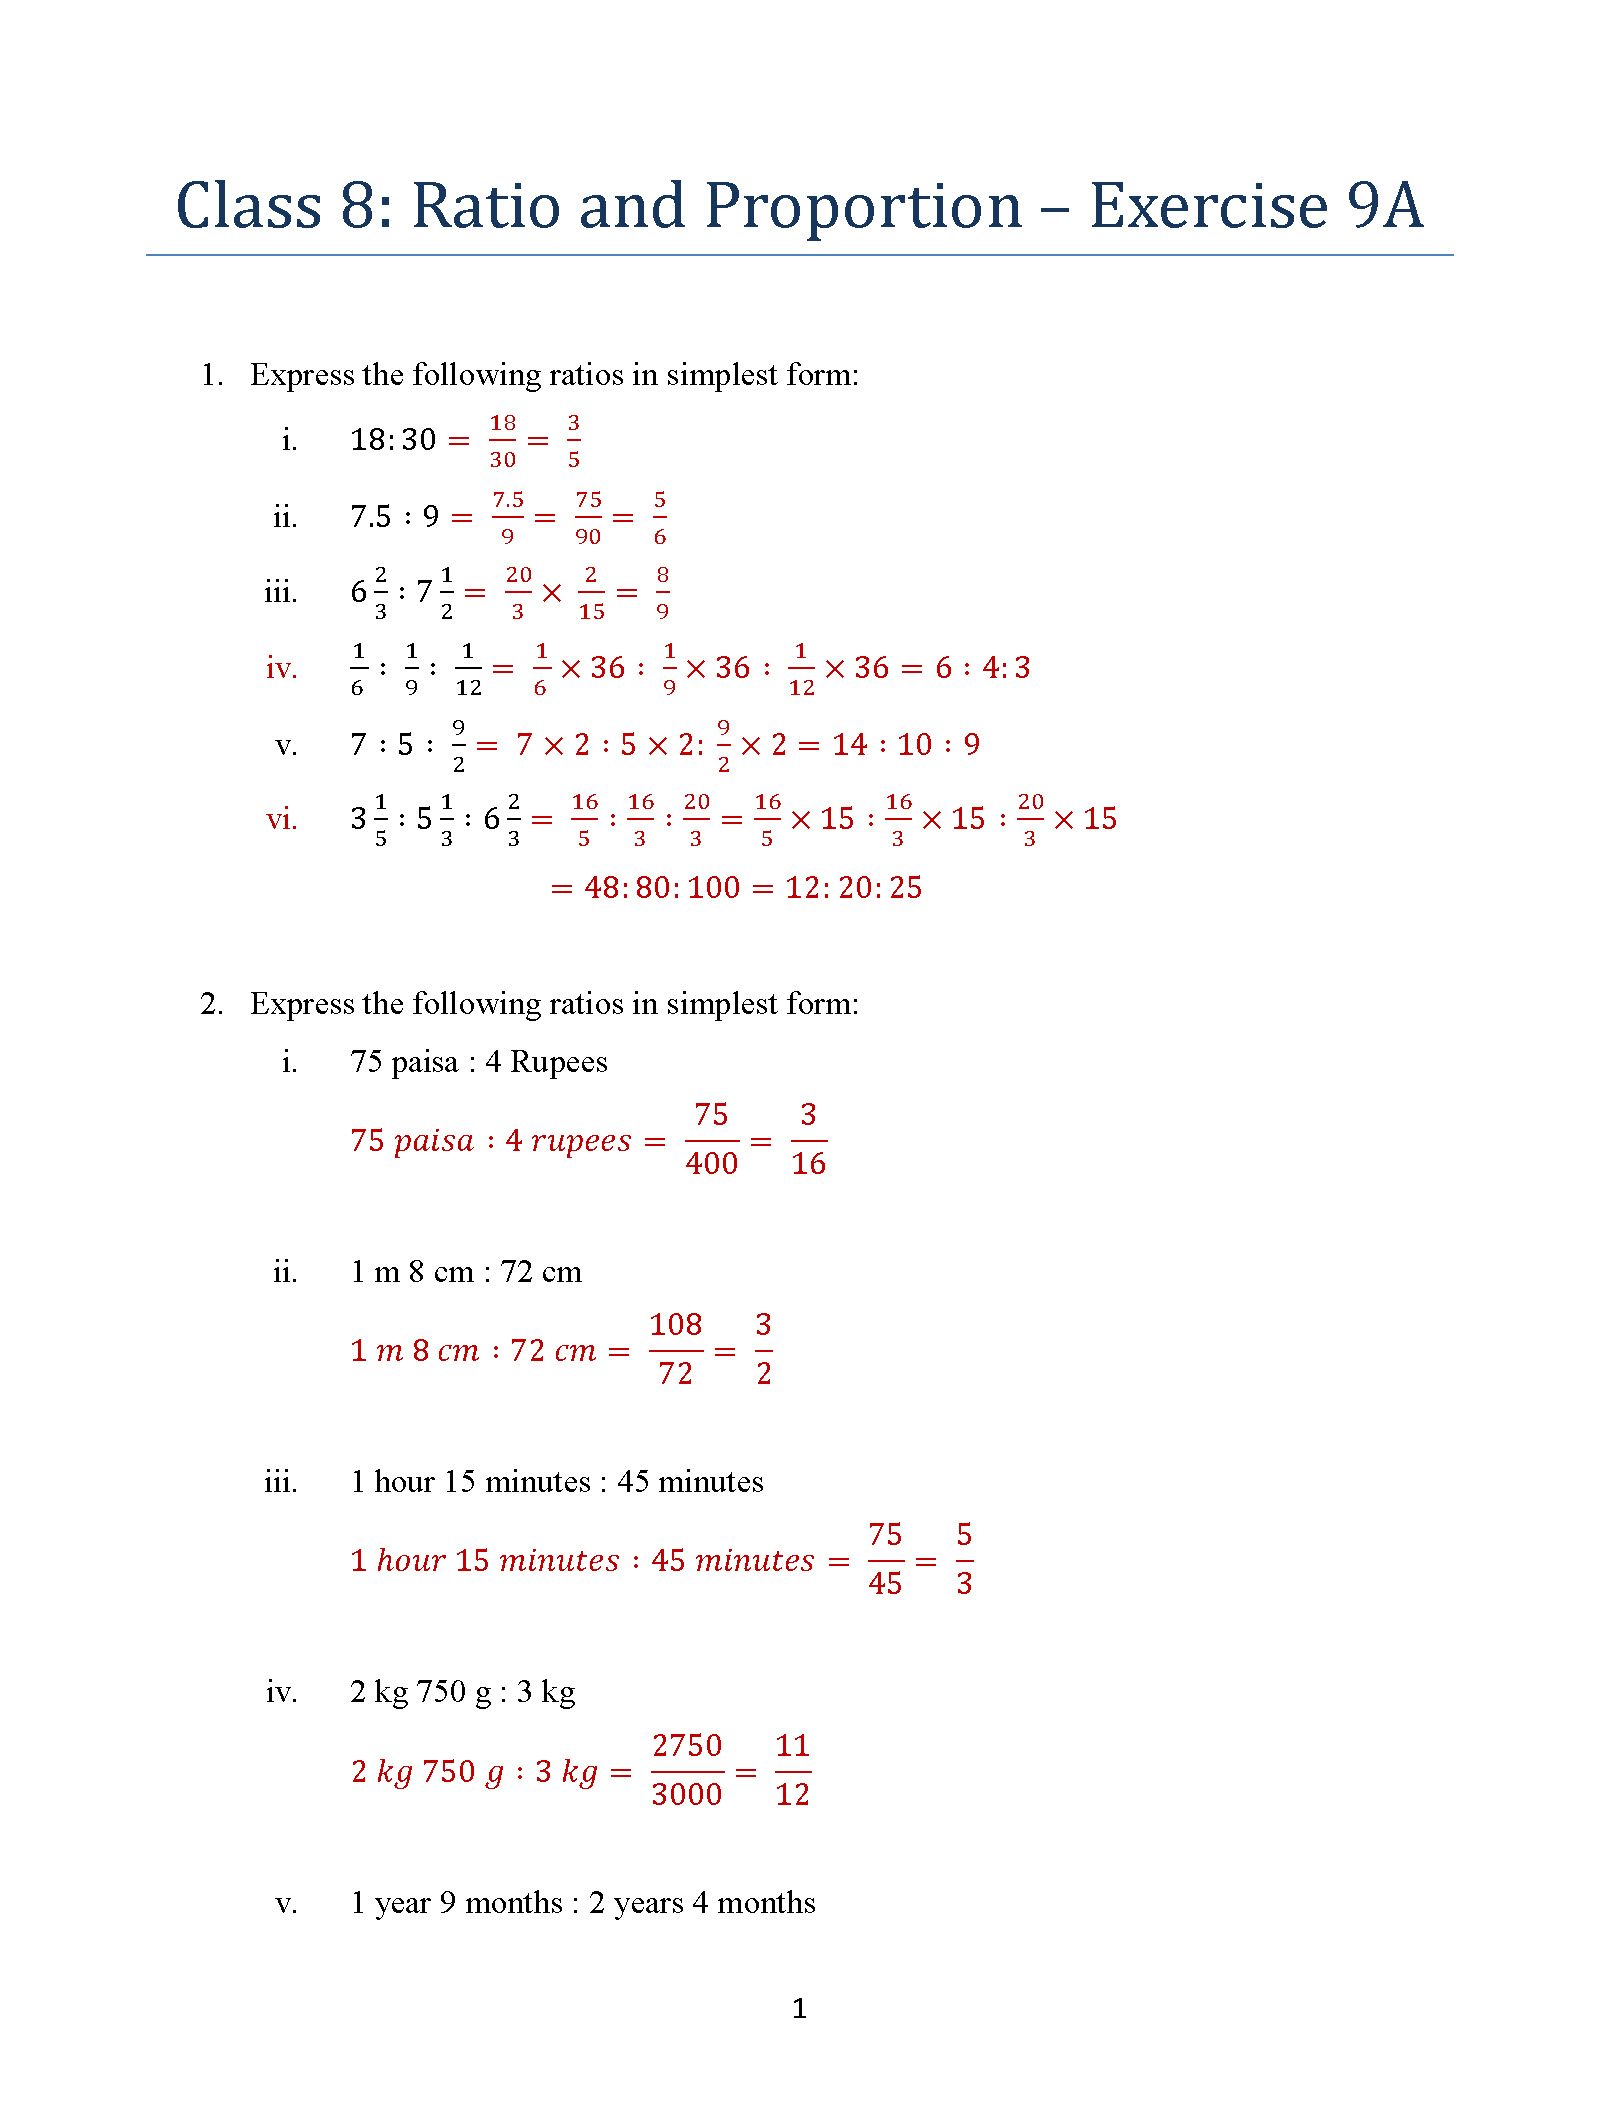 Class 8 Ratio And Proportion Exercise 9a Icse Isc